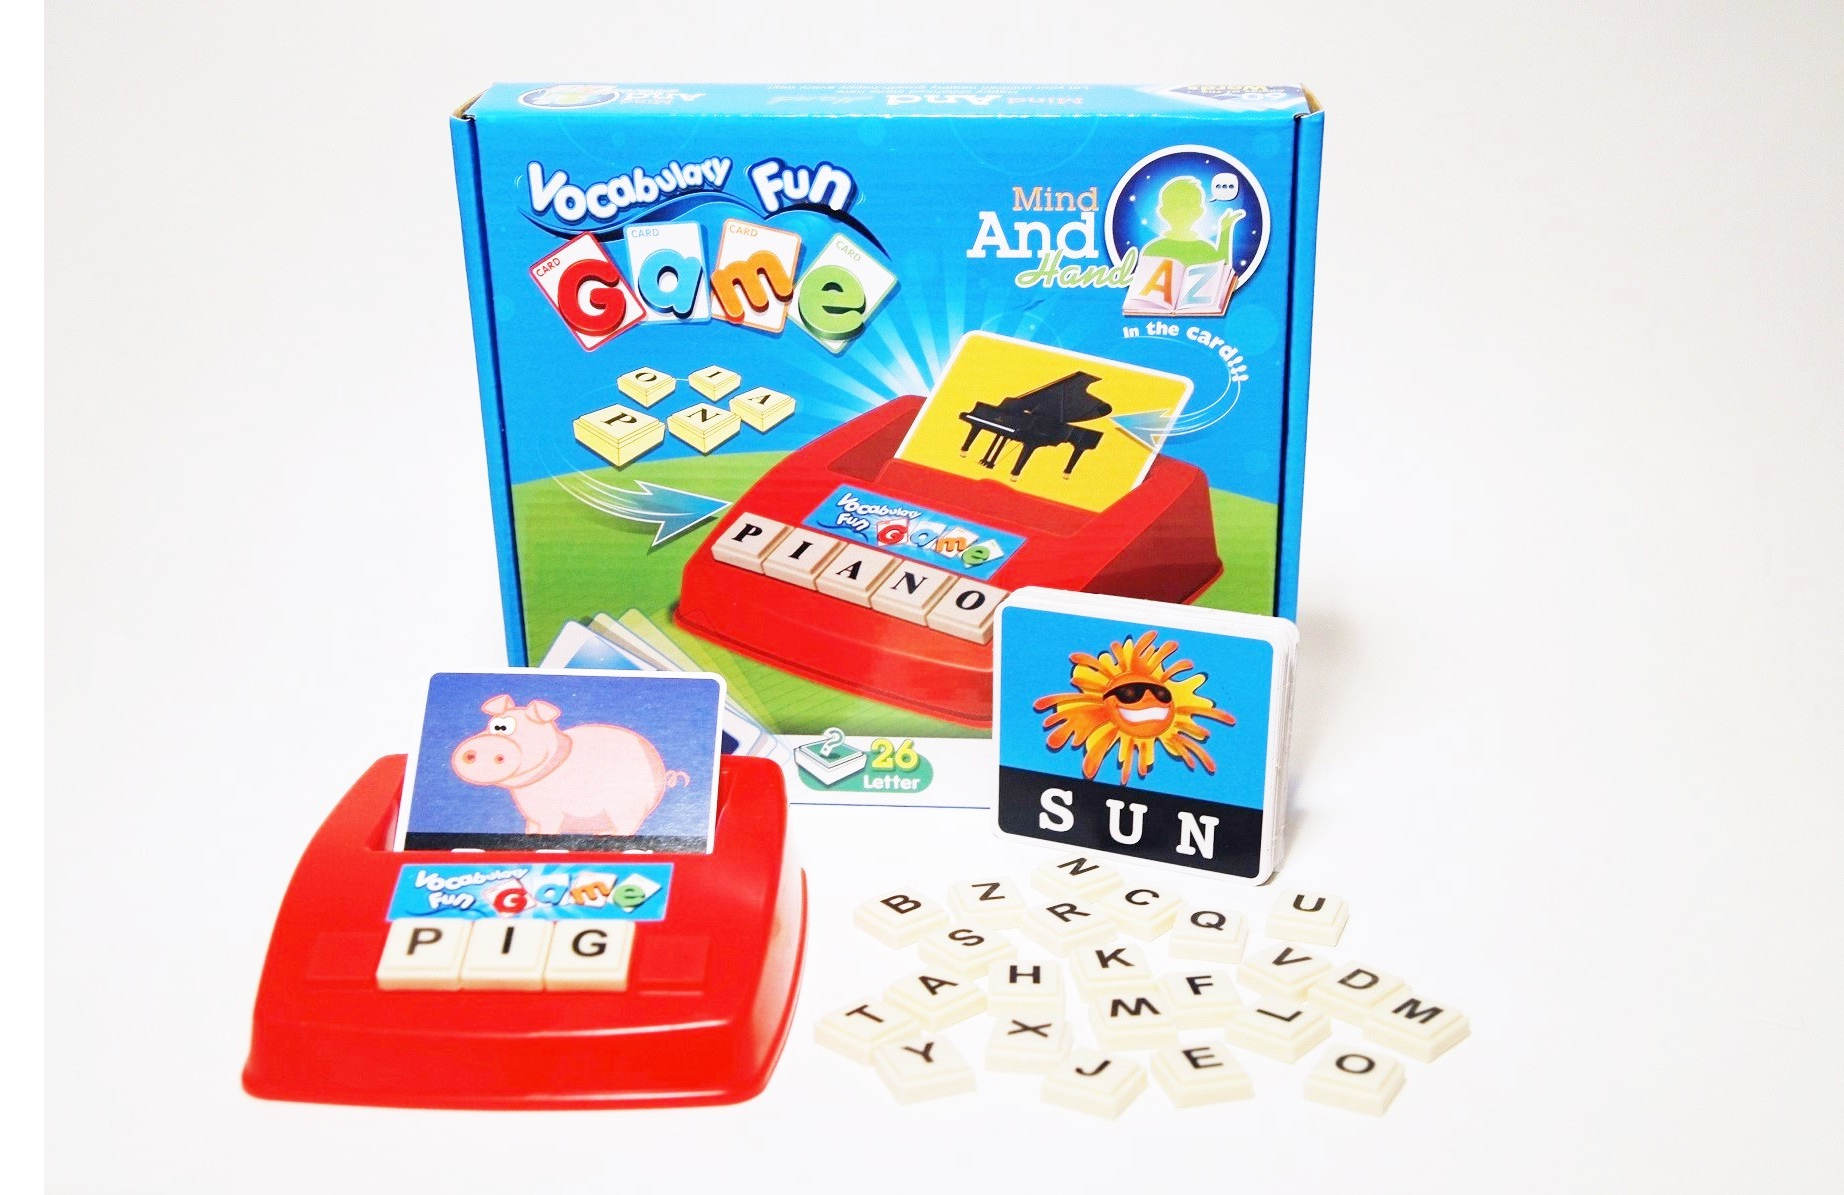 Toy Vocabulary Game : Vocabulary fun spelling game fab findz